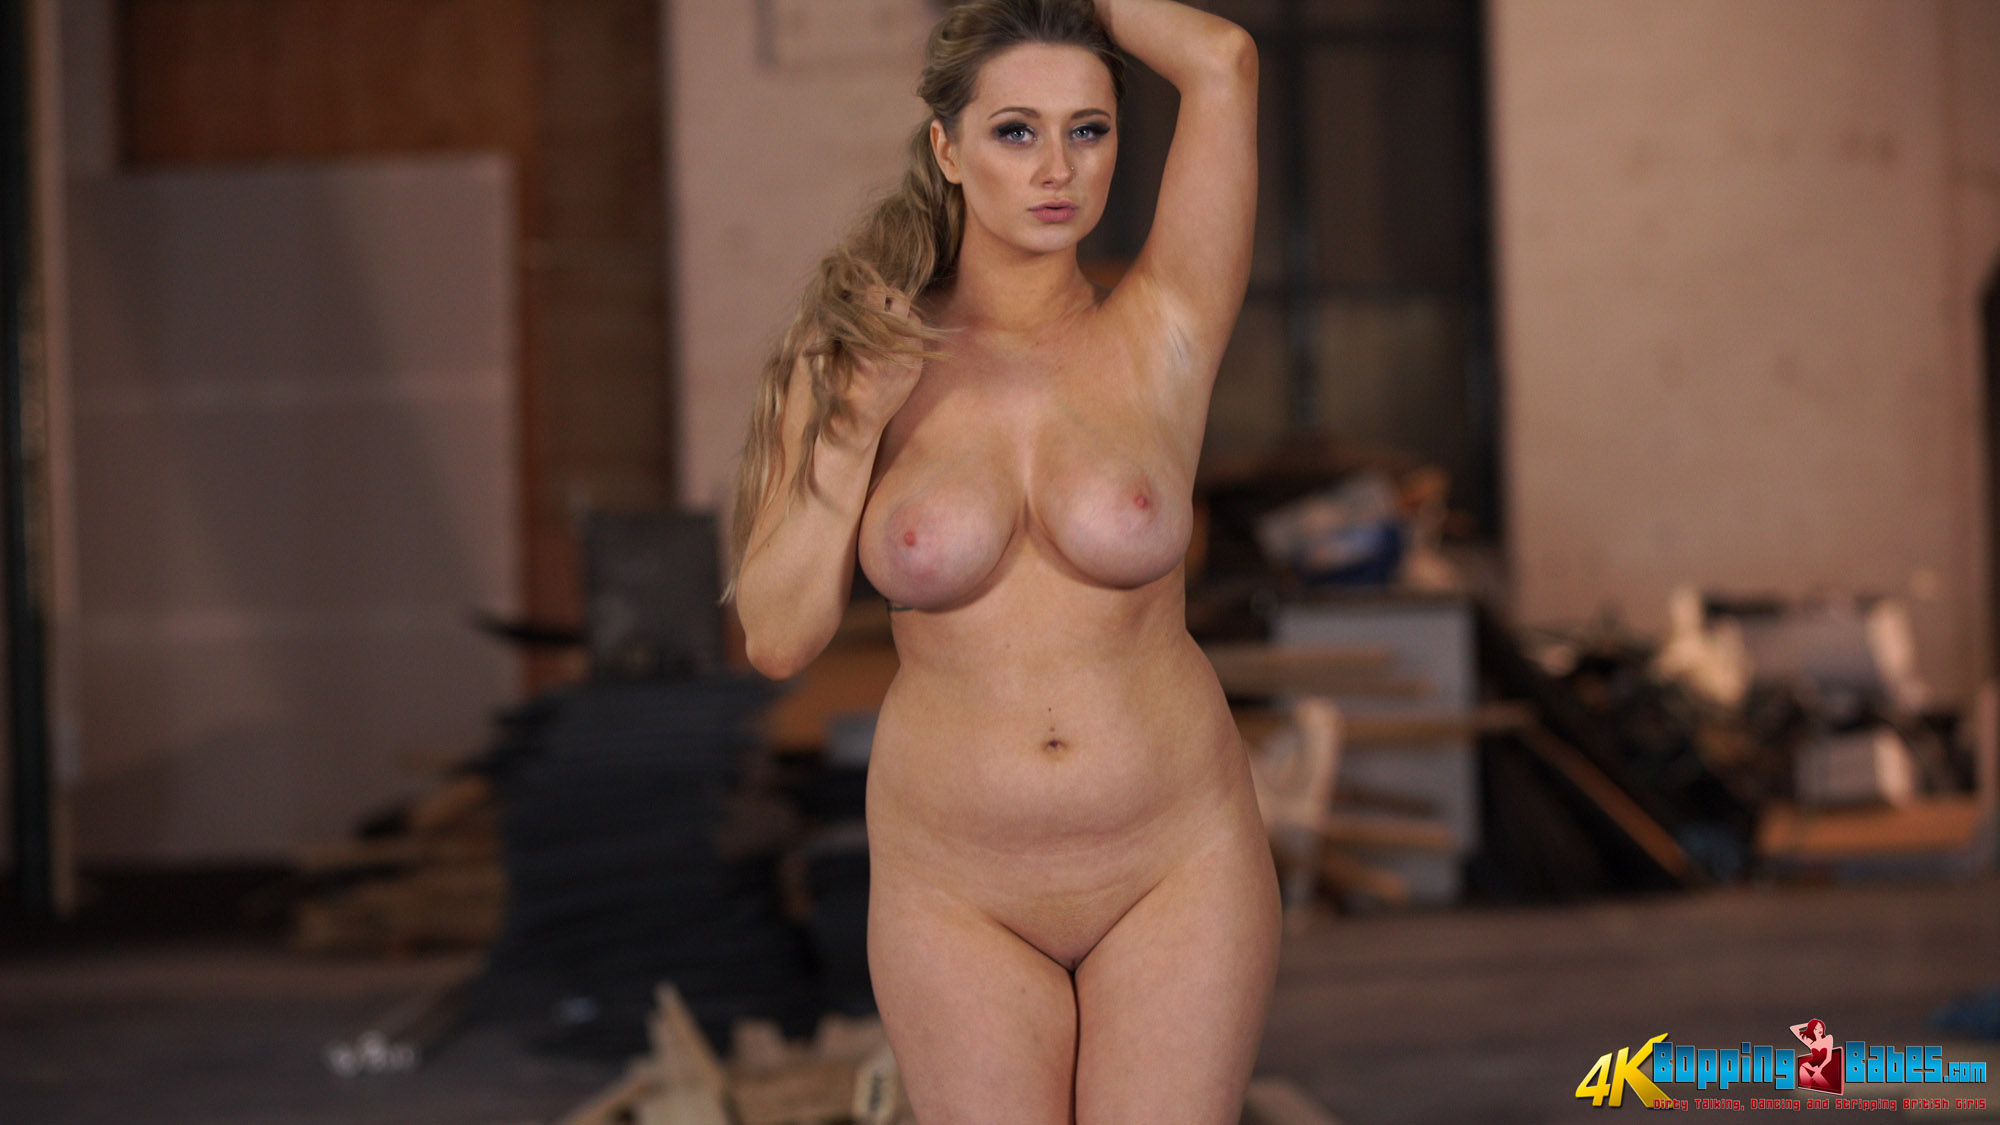 rachael ray naked pussy real pics